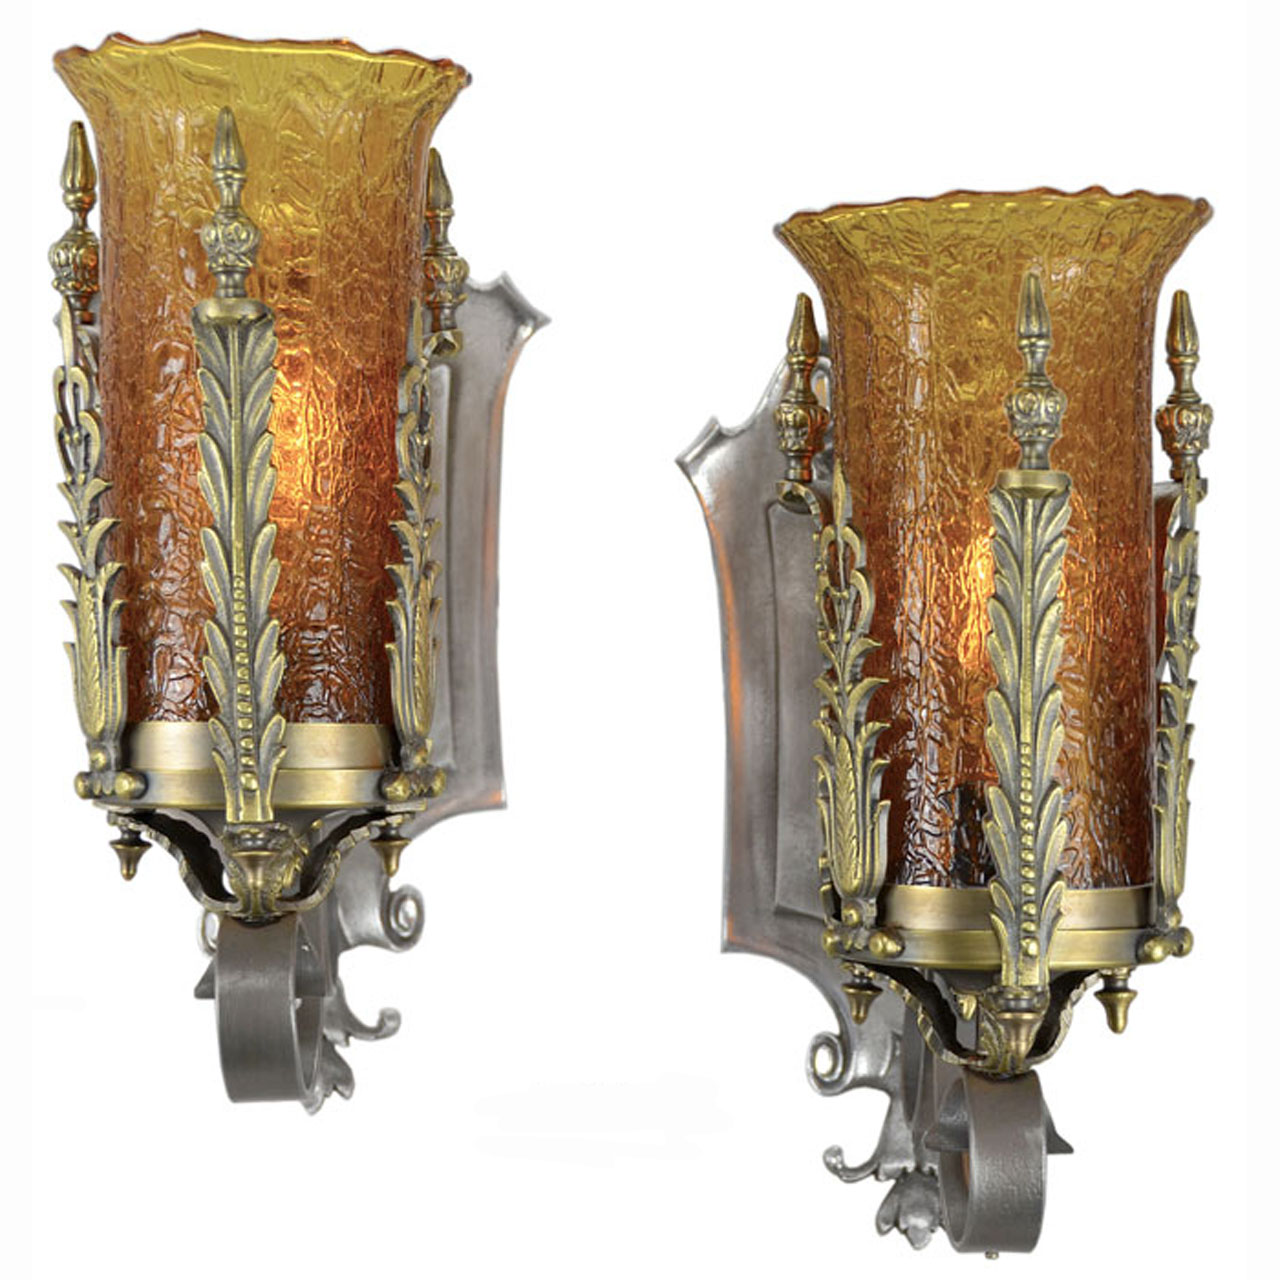 Pair of Antique 1920s - 1930s Art Deco Wall Sconces with Crackle Glass Shades (ANT-367) For Sale ...